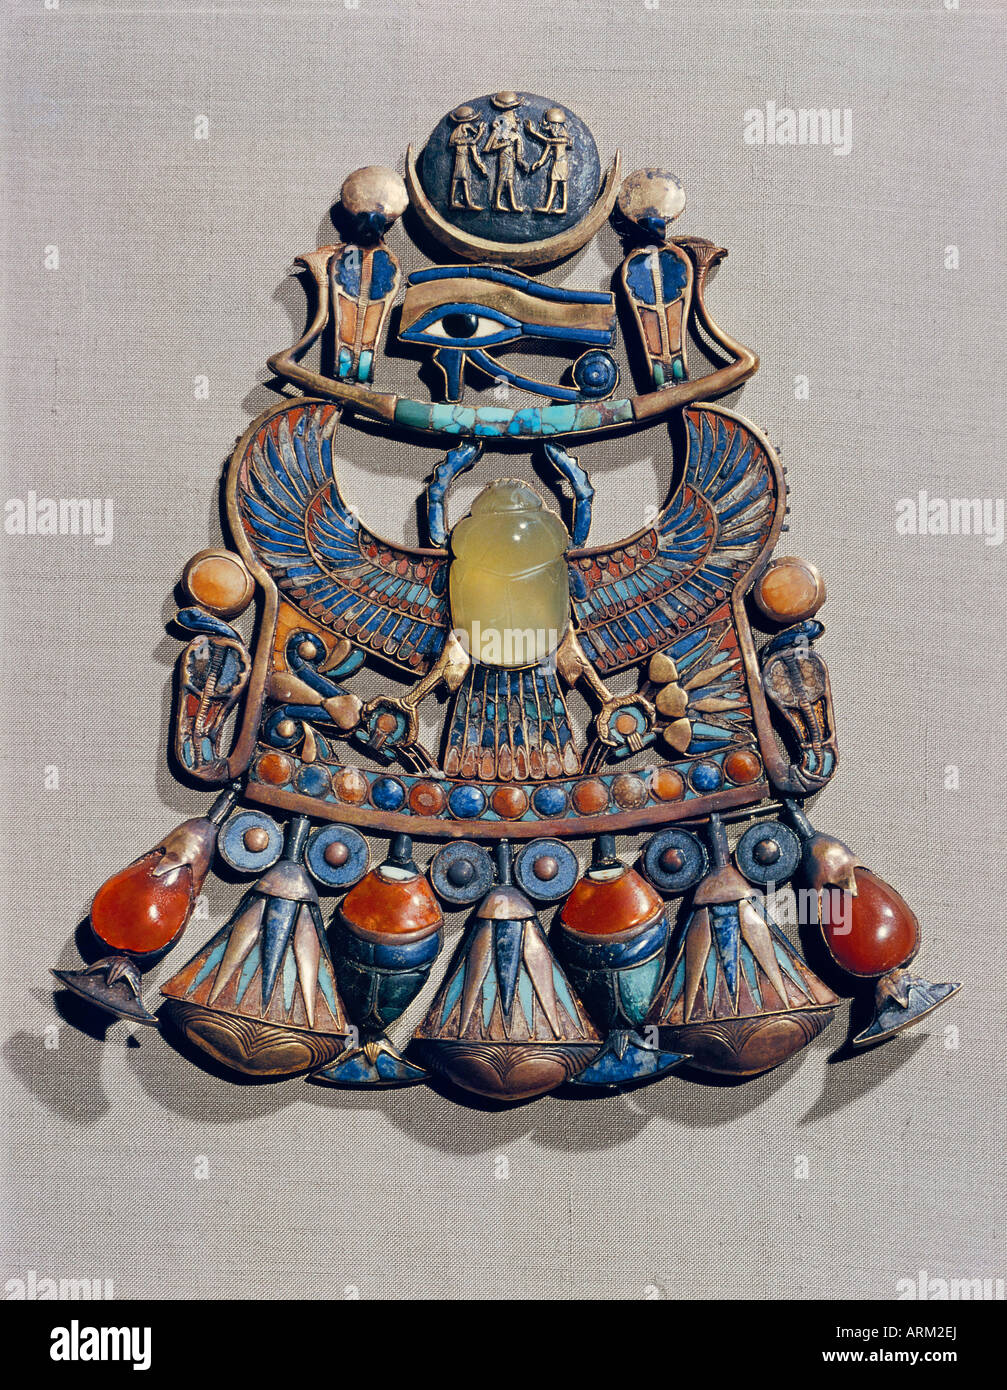 Pectoral in gold cloisonne with semi-precious stones, with winged scarab, symbol of resurrection, in centre - Stock Image